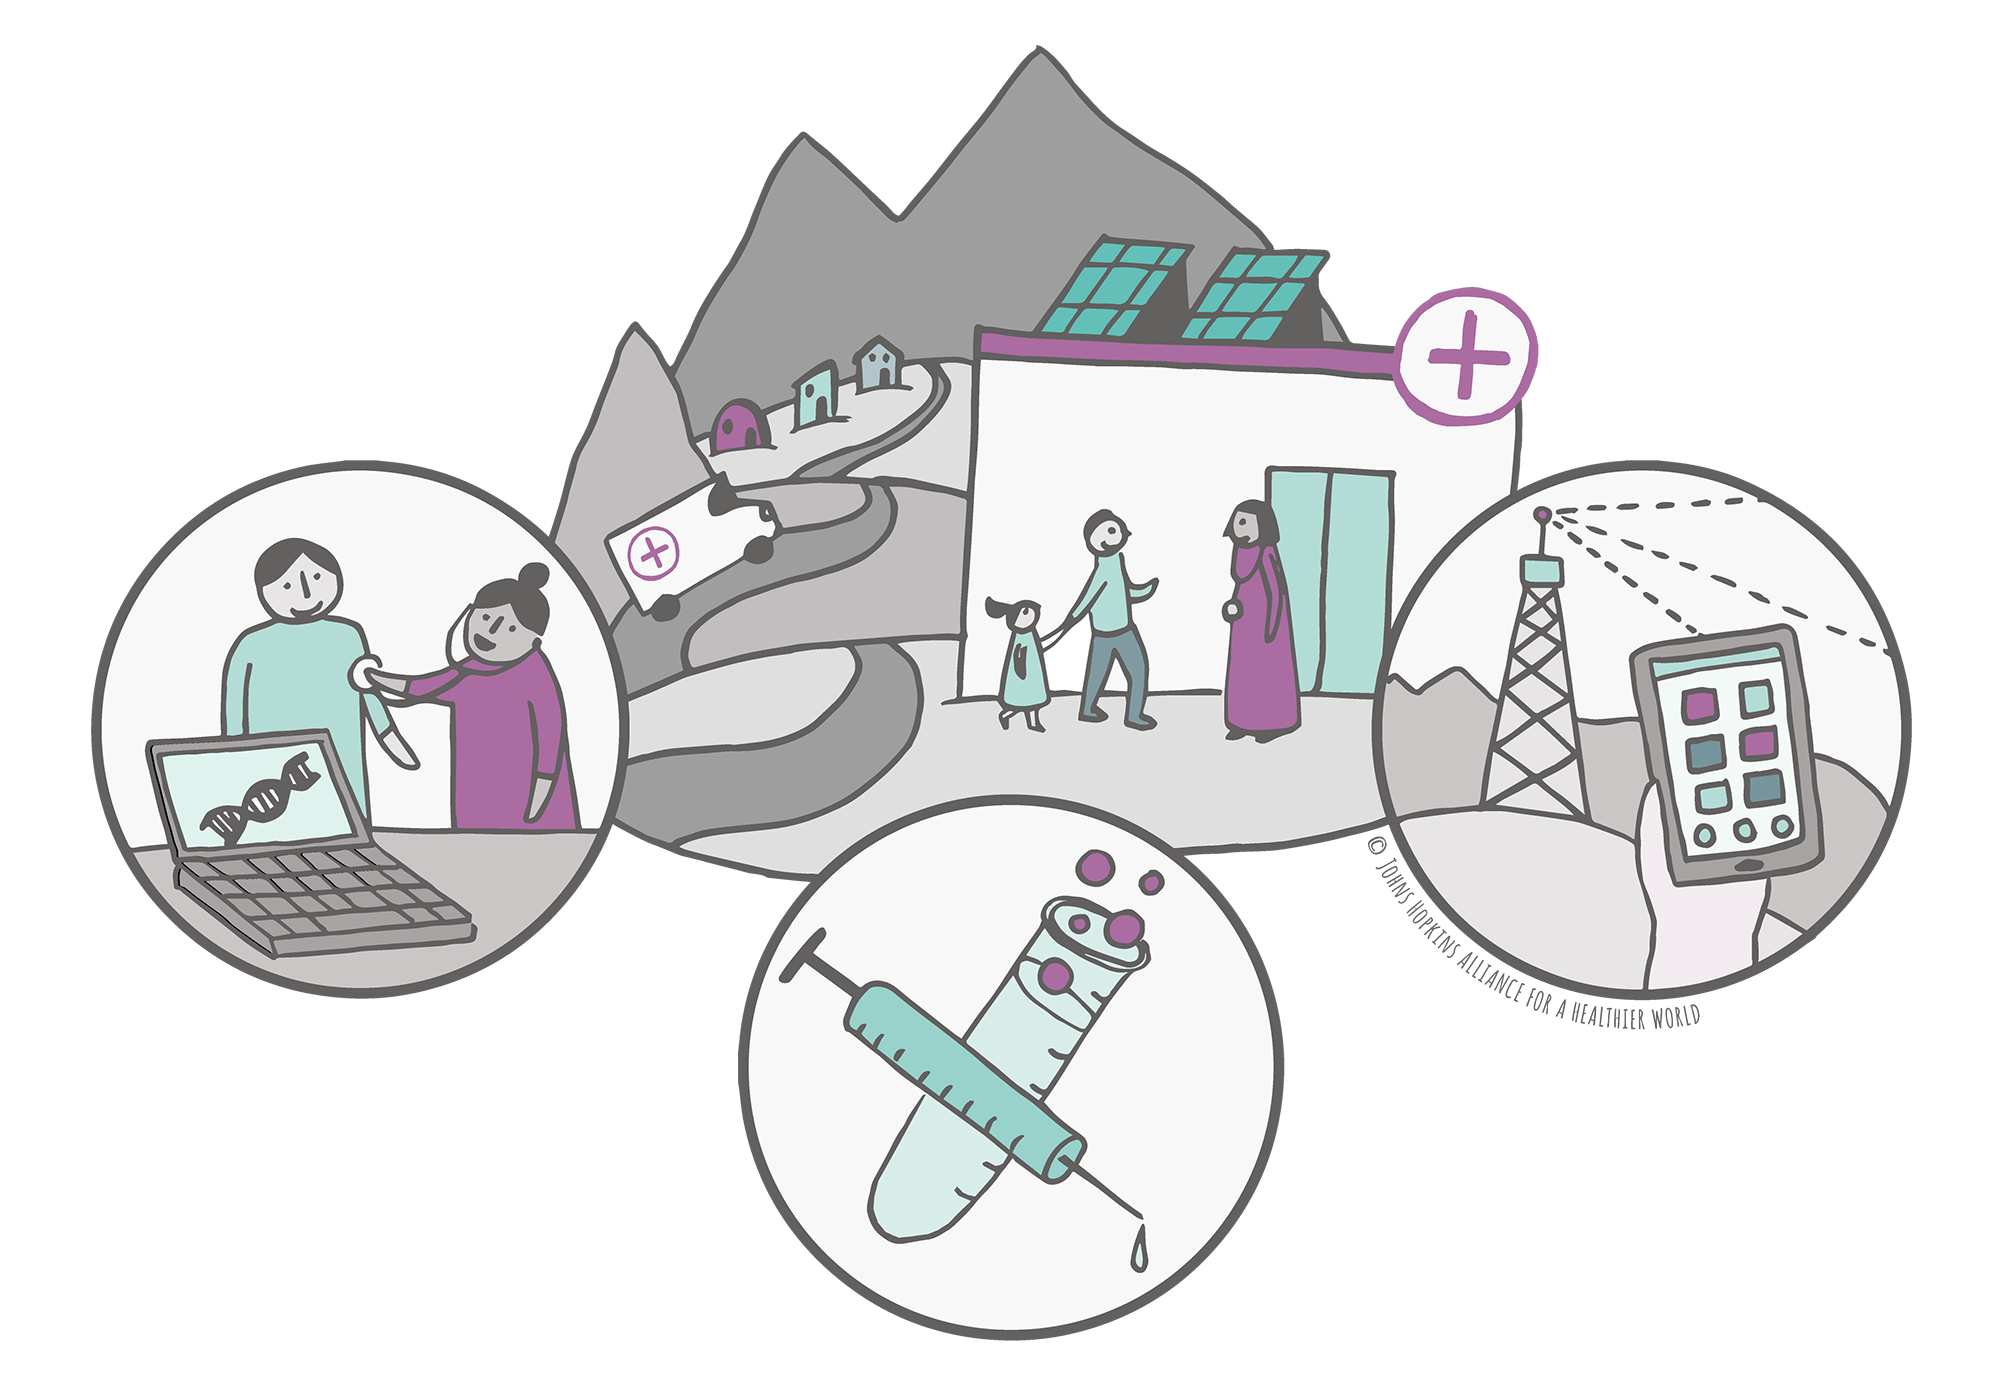 Story illustration and icon for AHW's Transformative Technologies & Institutions thematic priority. © Alliance for a Healthier World